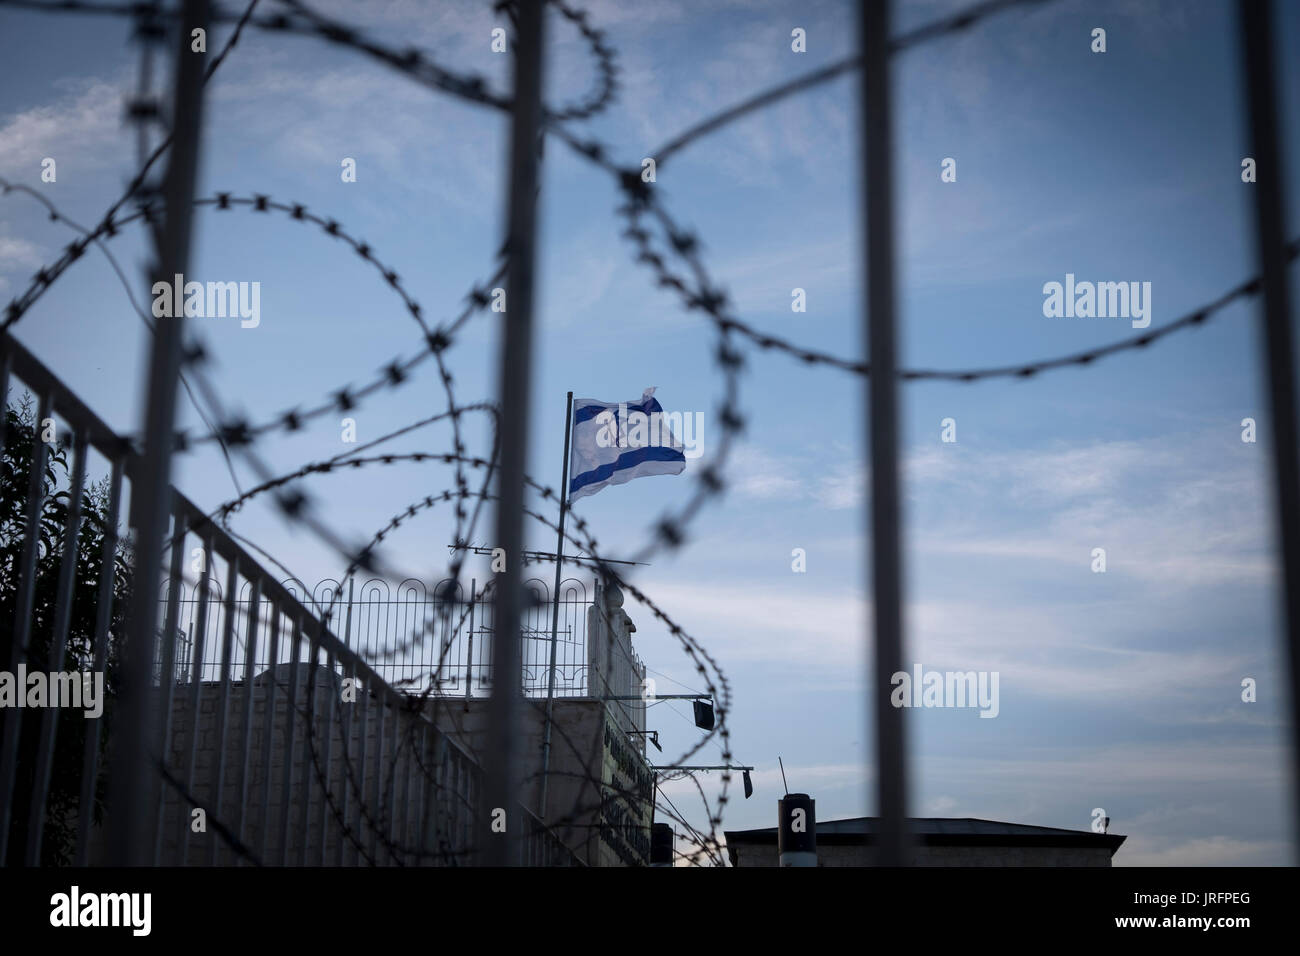 Wire Fencing Stock Photos & Wire Fencing Stock Images - Alamy